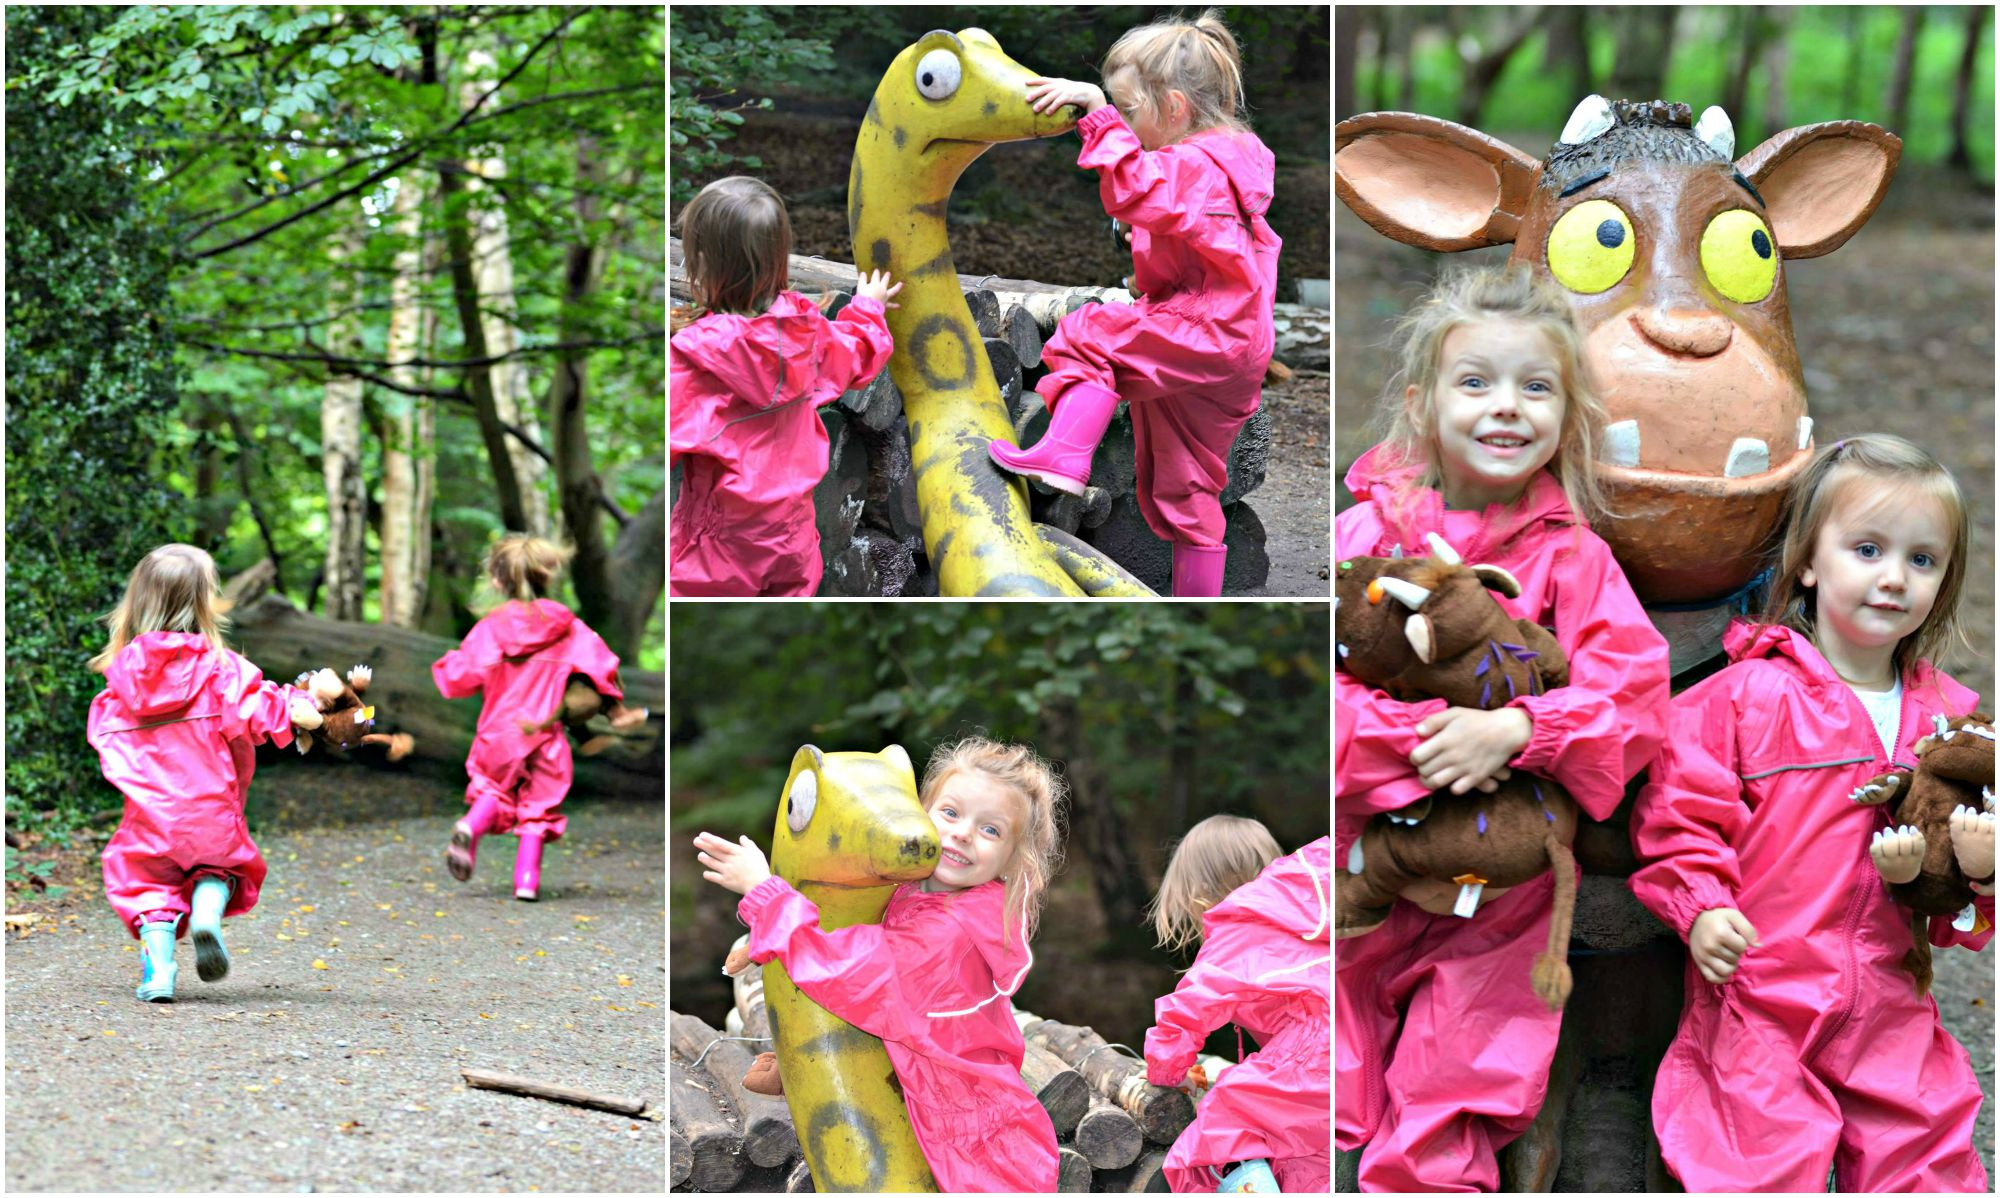 dry kids gruffalo adventure